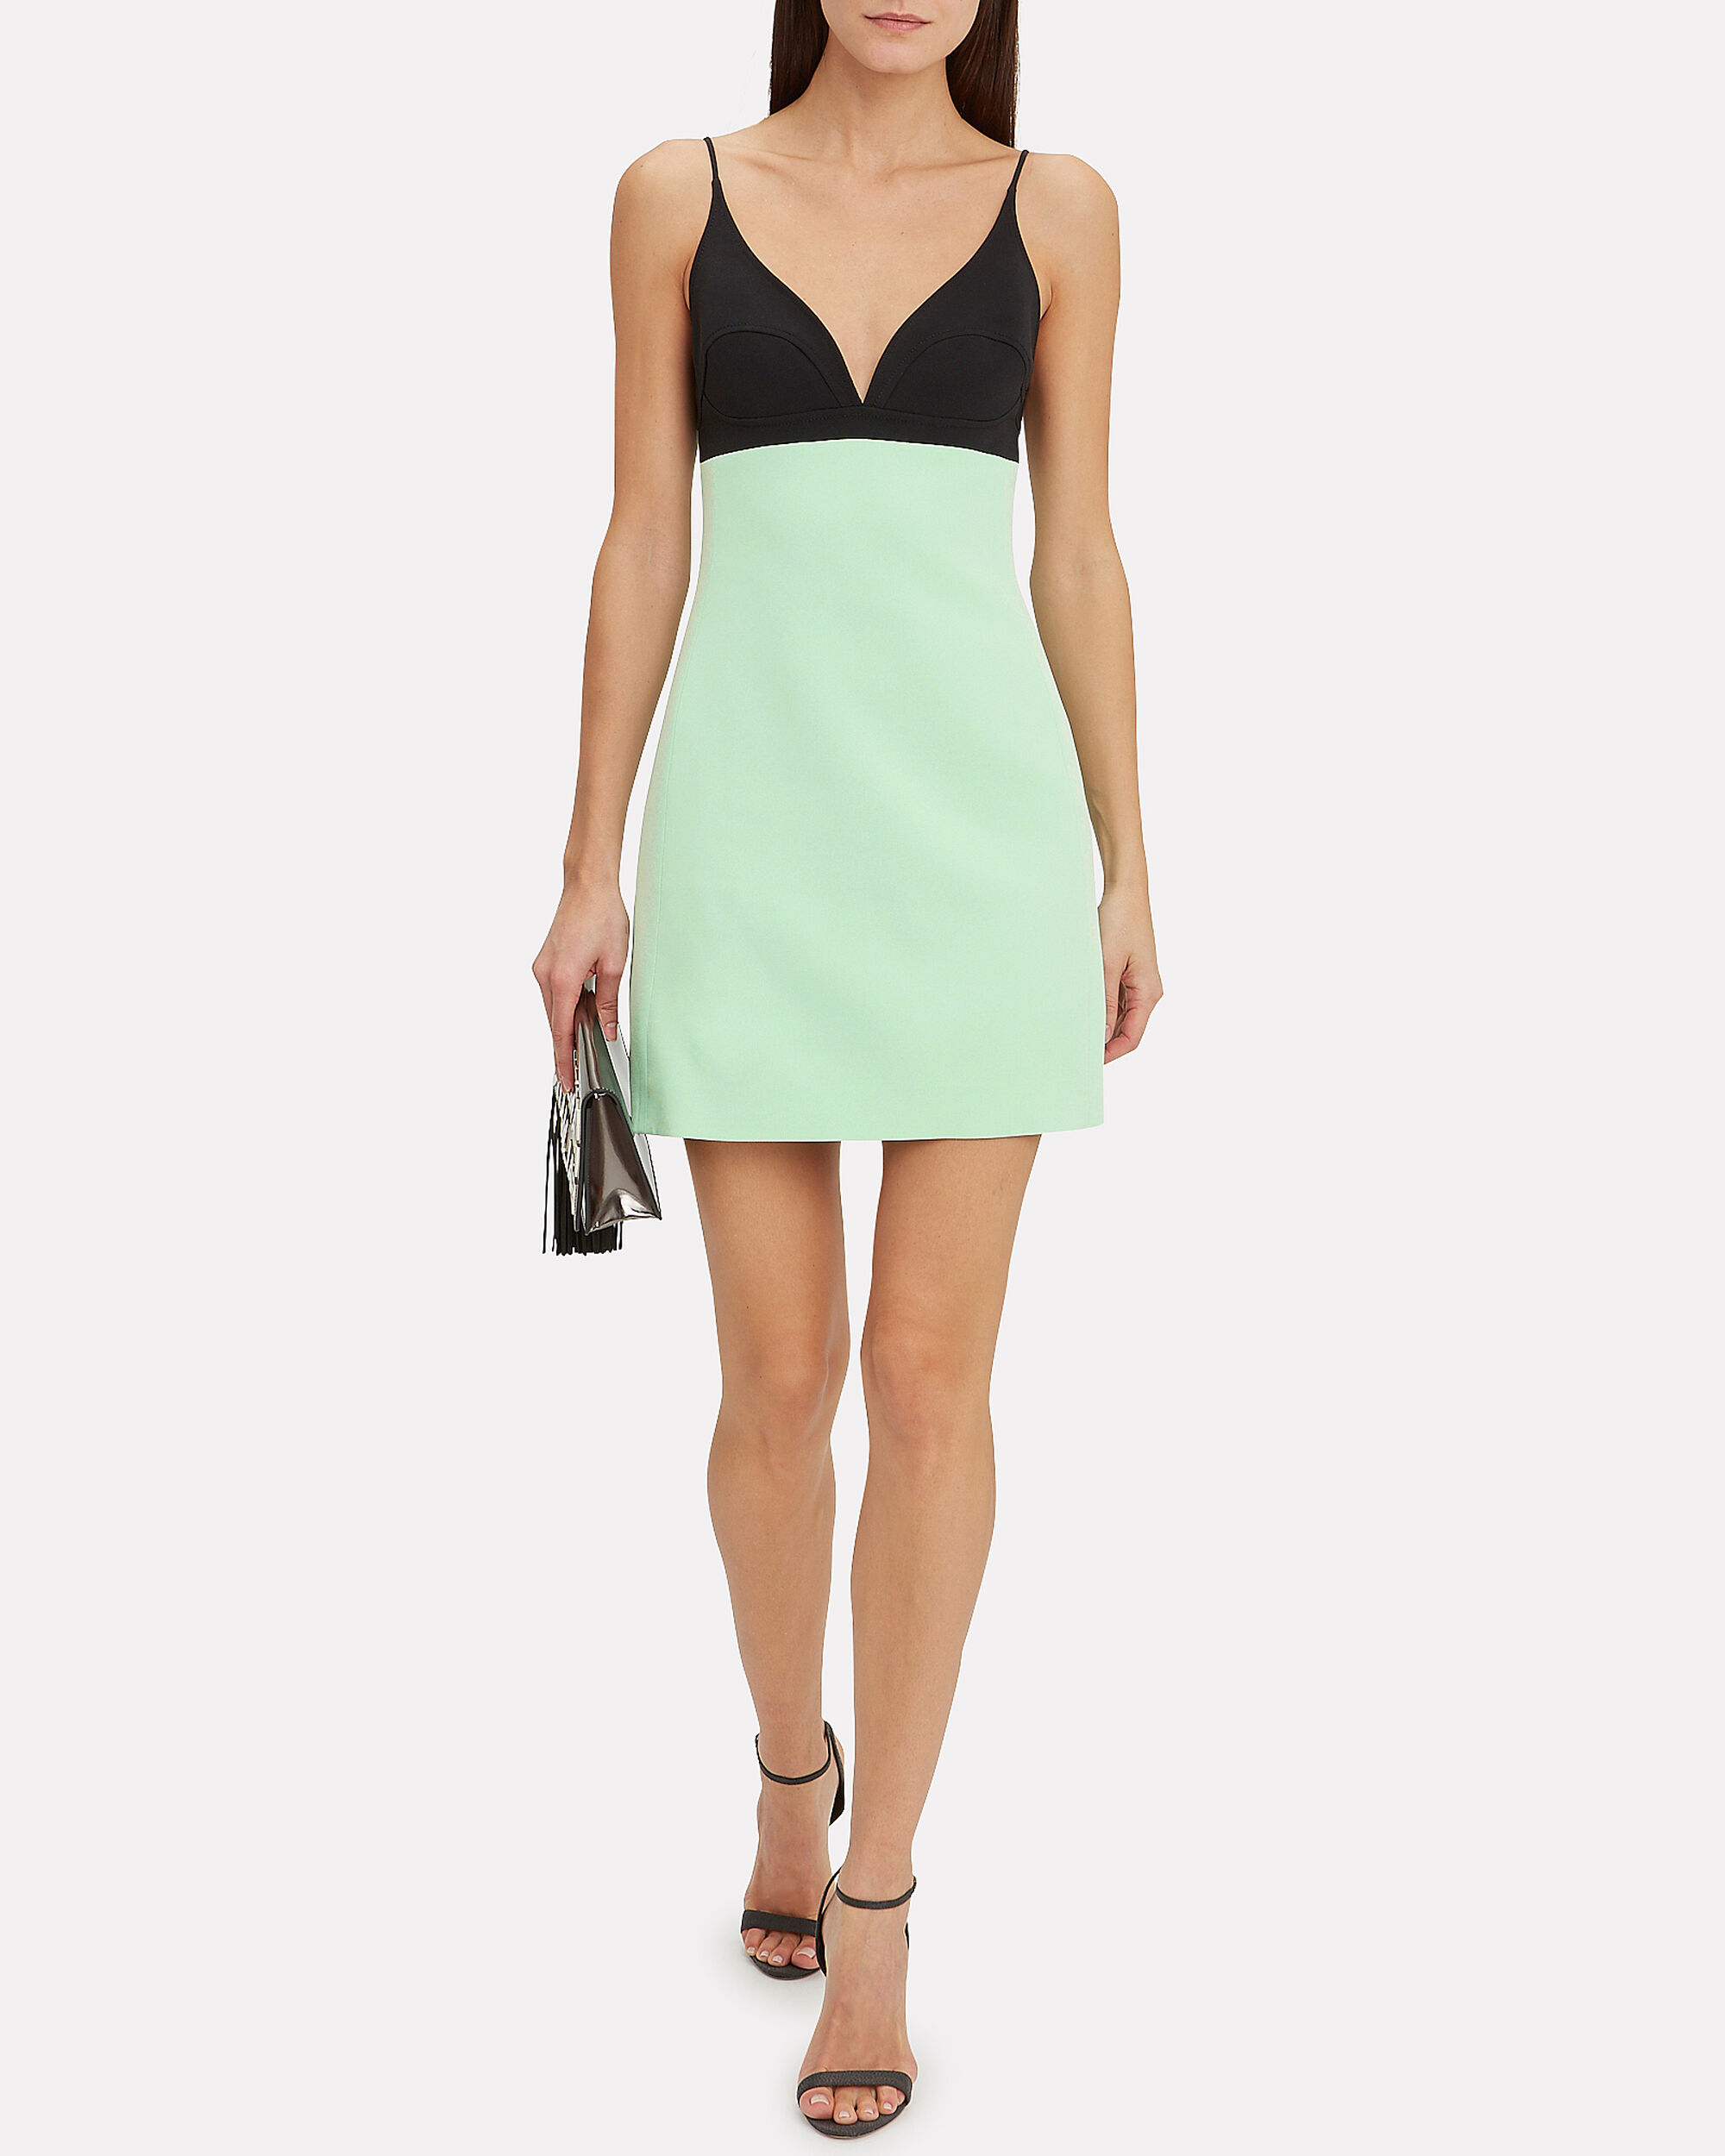 Contrast Bra Strappy Mini Dress, MINT/BLACK, hi-res